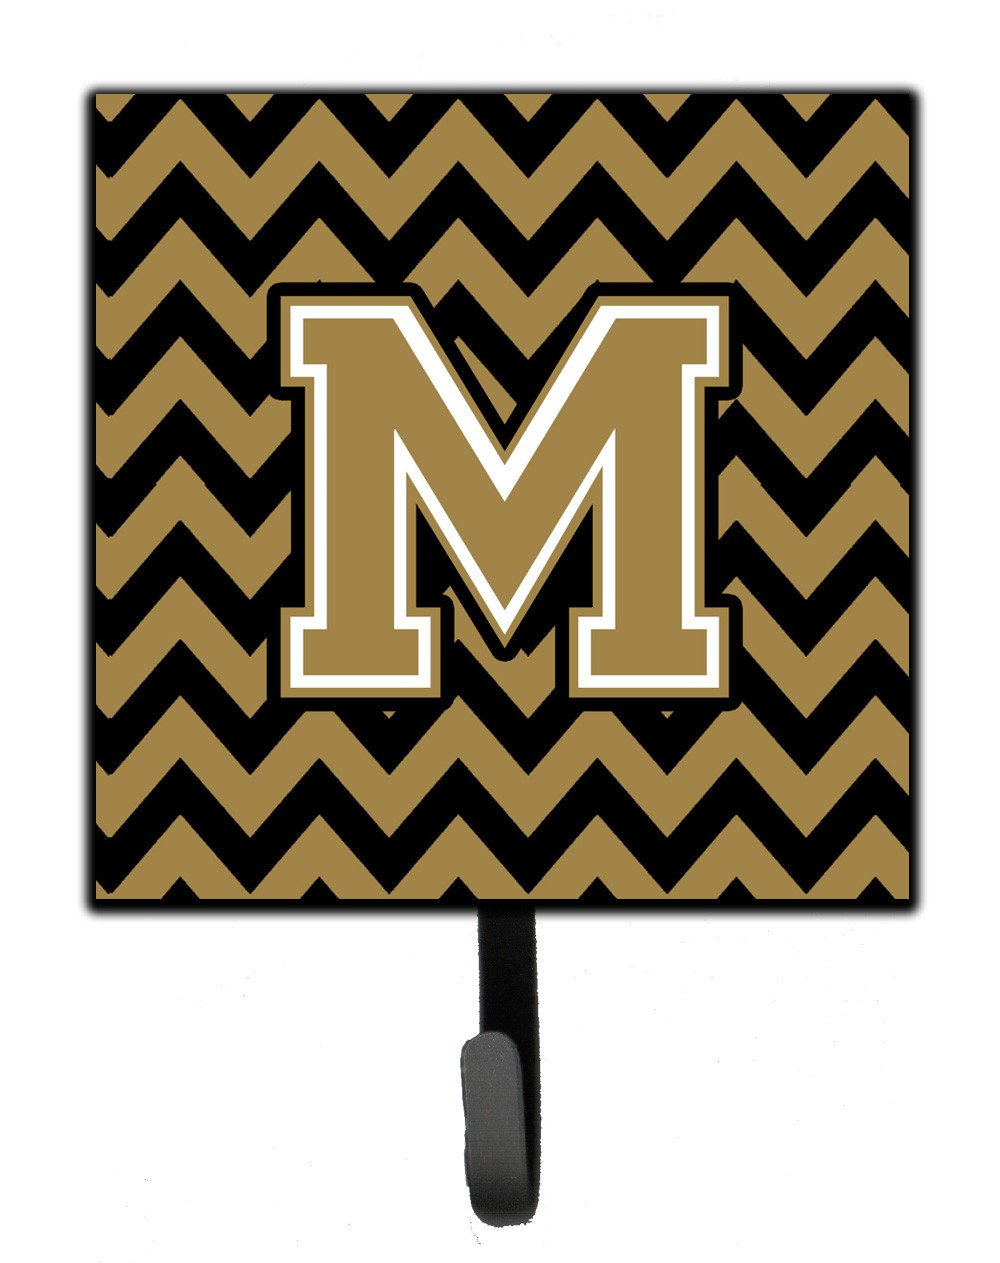 Letter M Chevron Black and Gold  Leash or Key Holder CJ1050-MSH4 by Caroline's Treasures